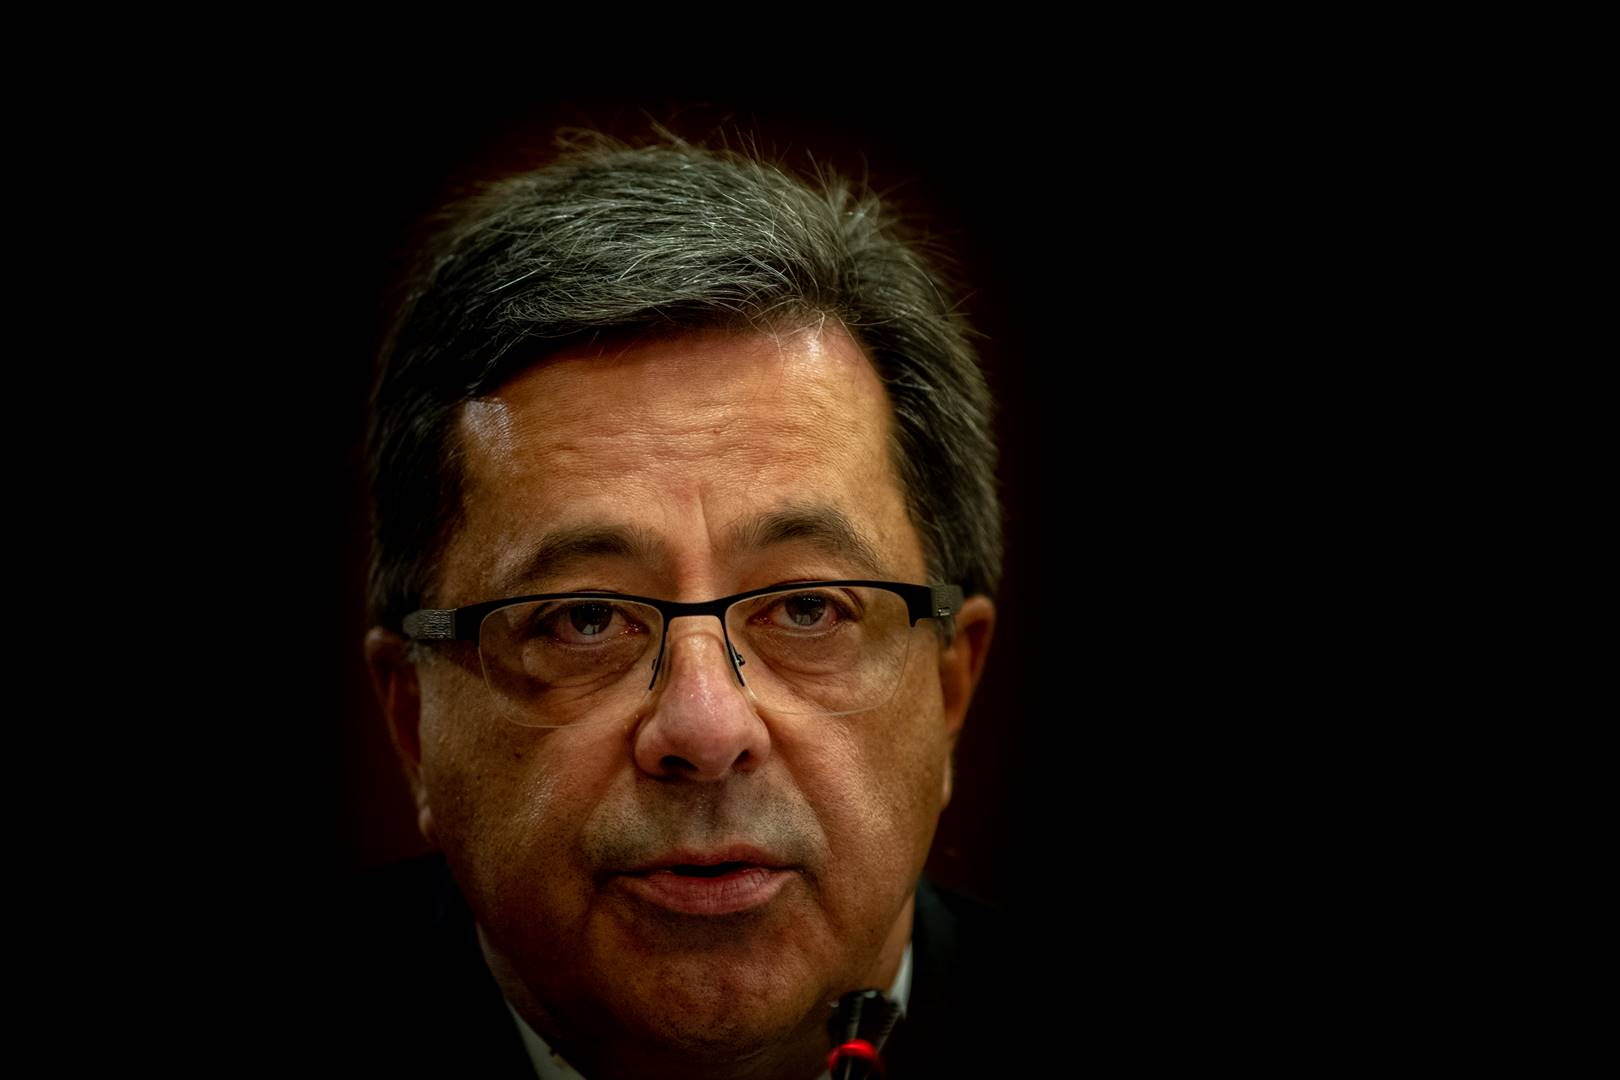 Markus Jooste, the former Steinhoff International Holdings chief executive, is among four people charged in Germany for accounting violations. Picture: beeld